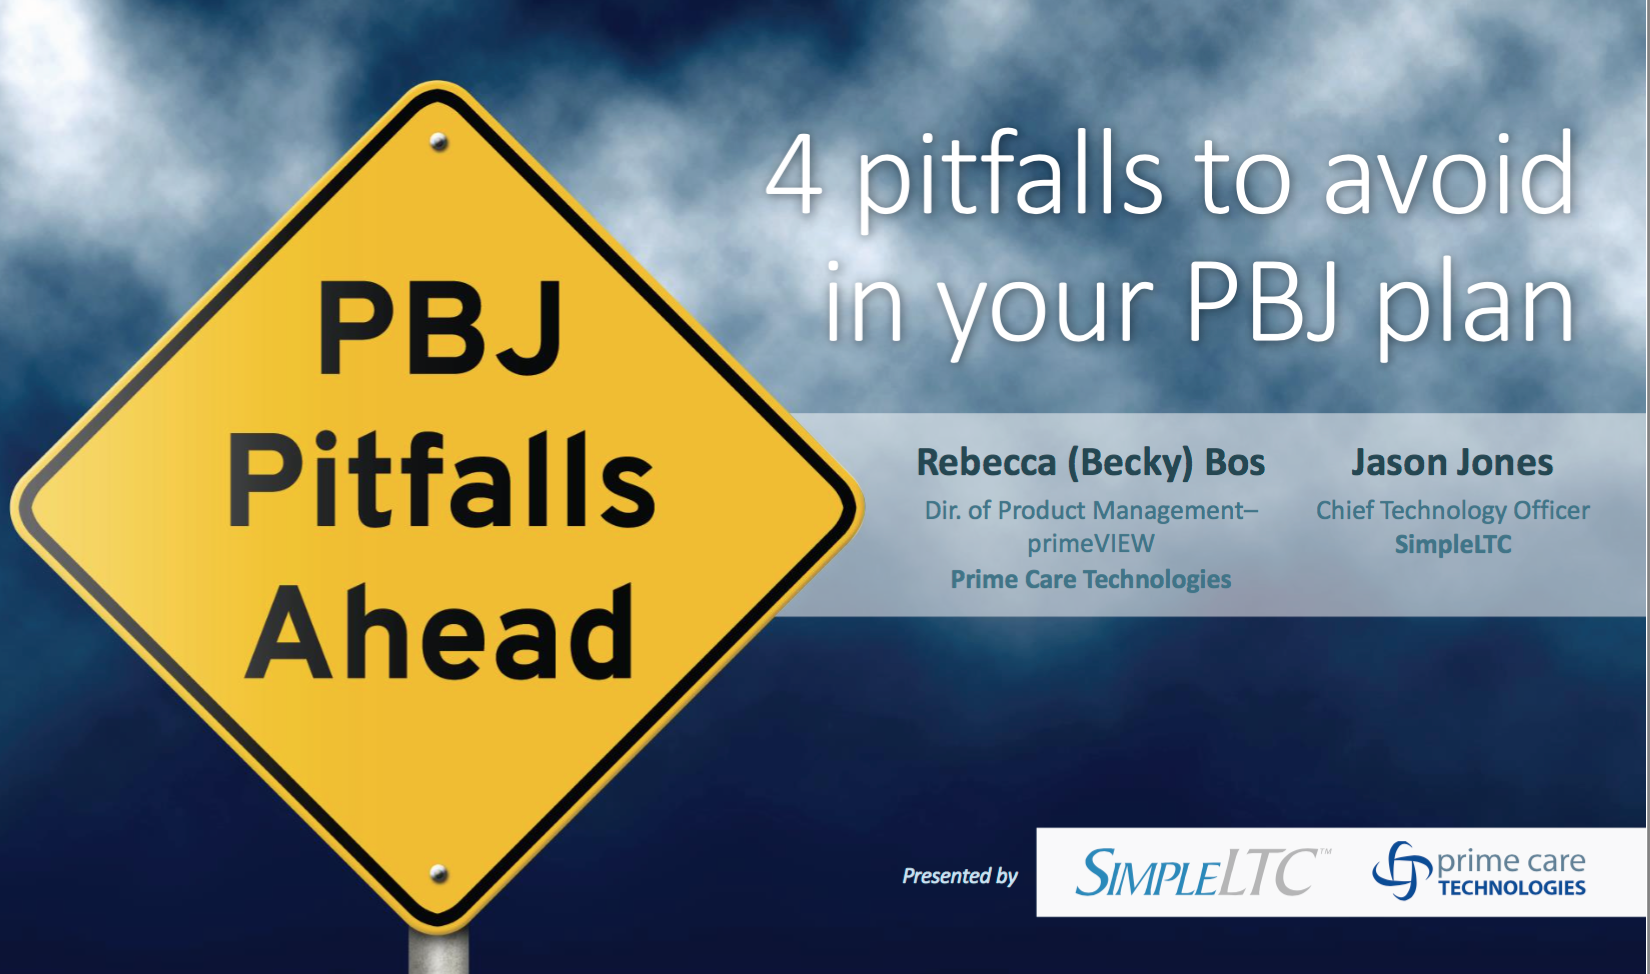 4 Pitballs to Avoid in Your PBJ Planning with SimpleLTC